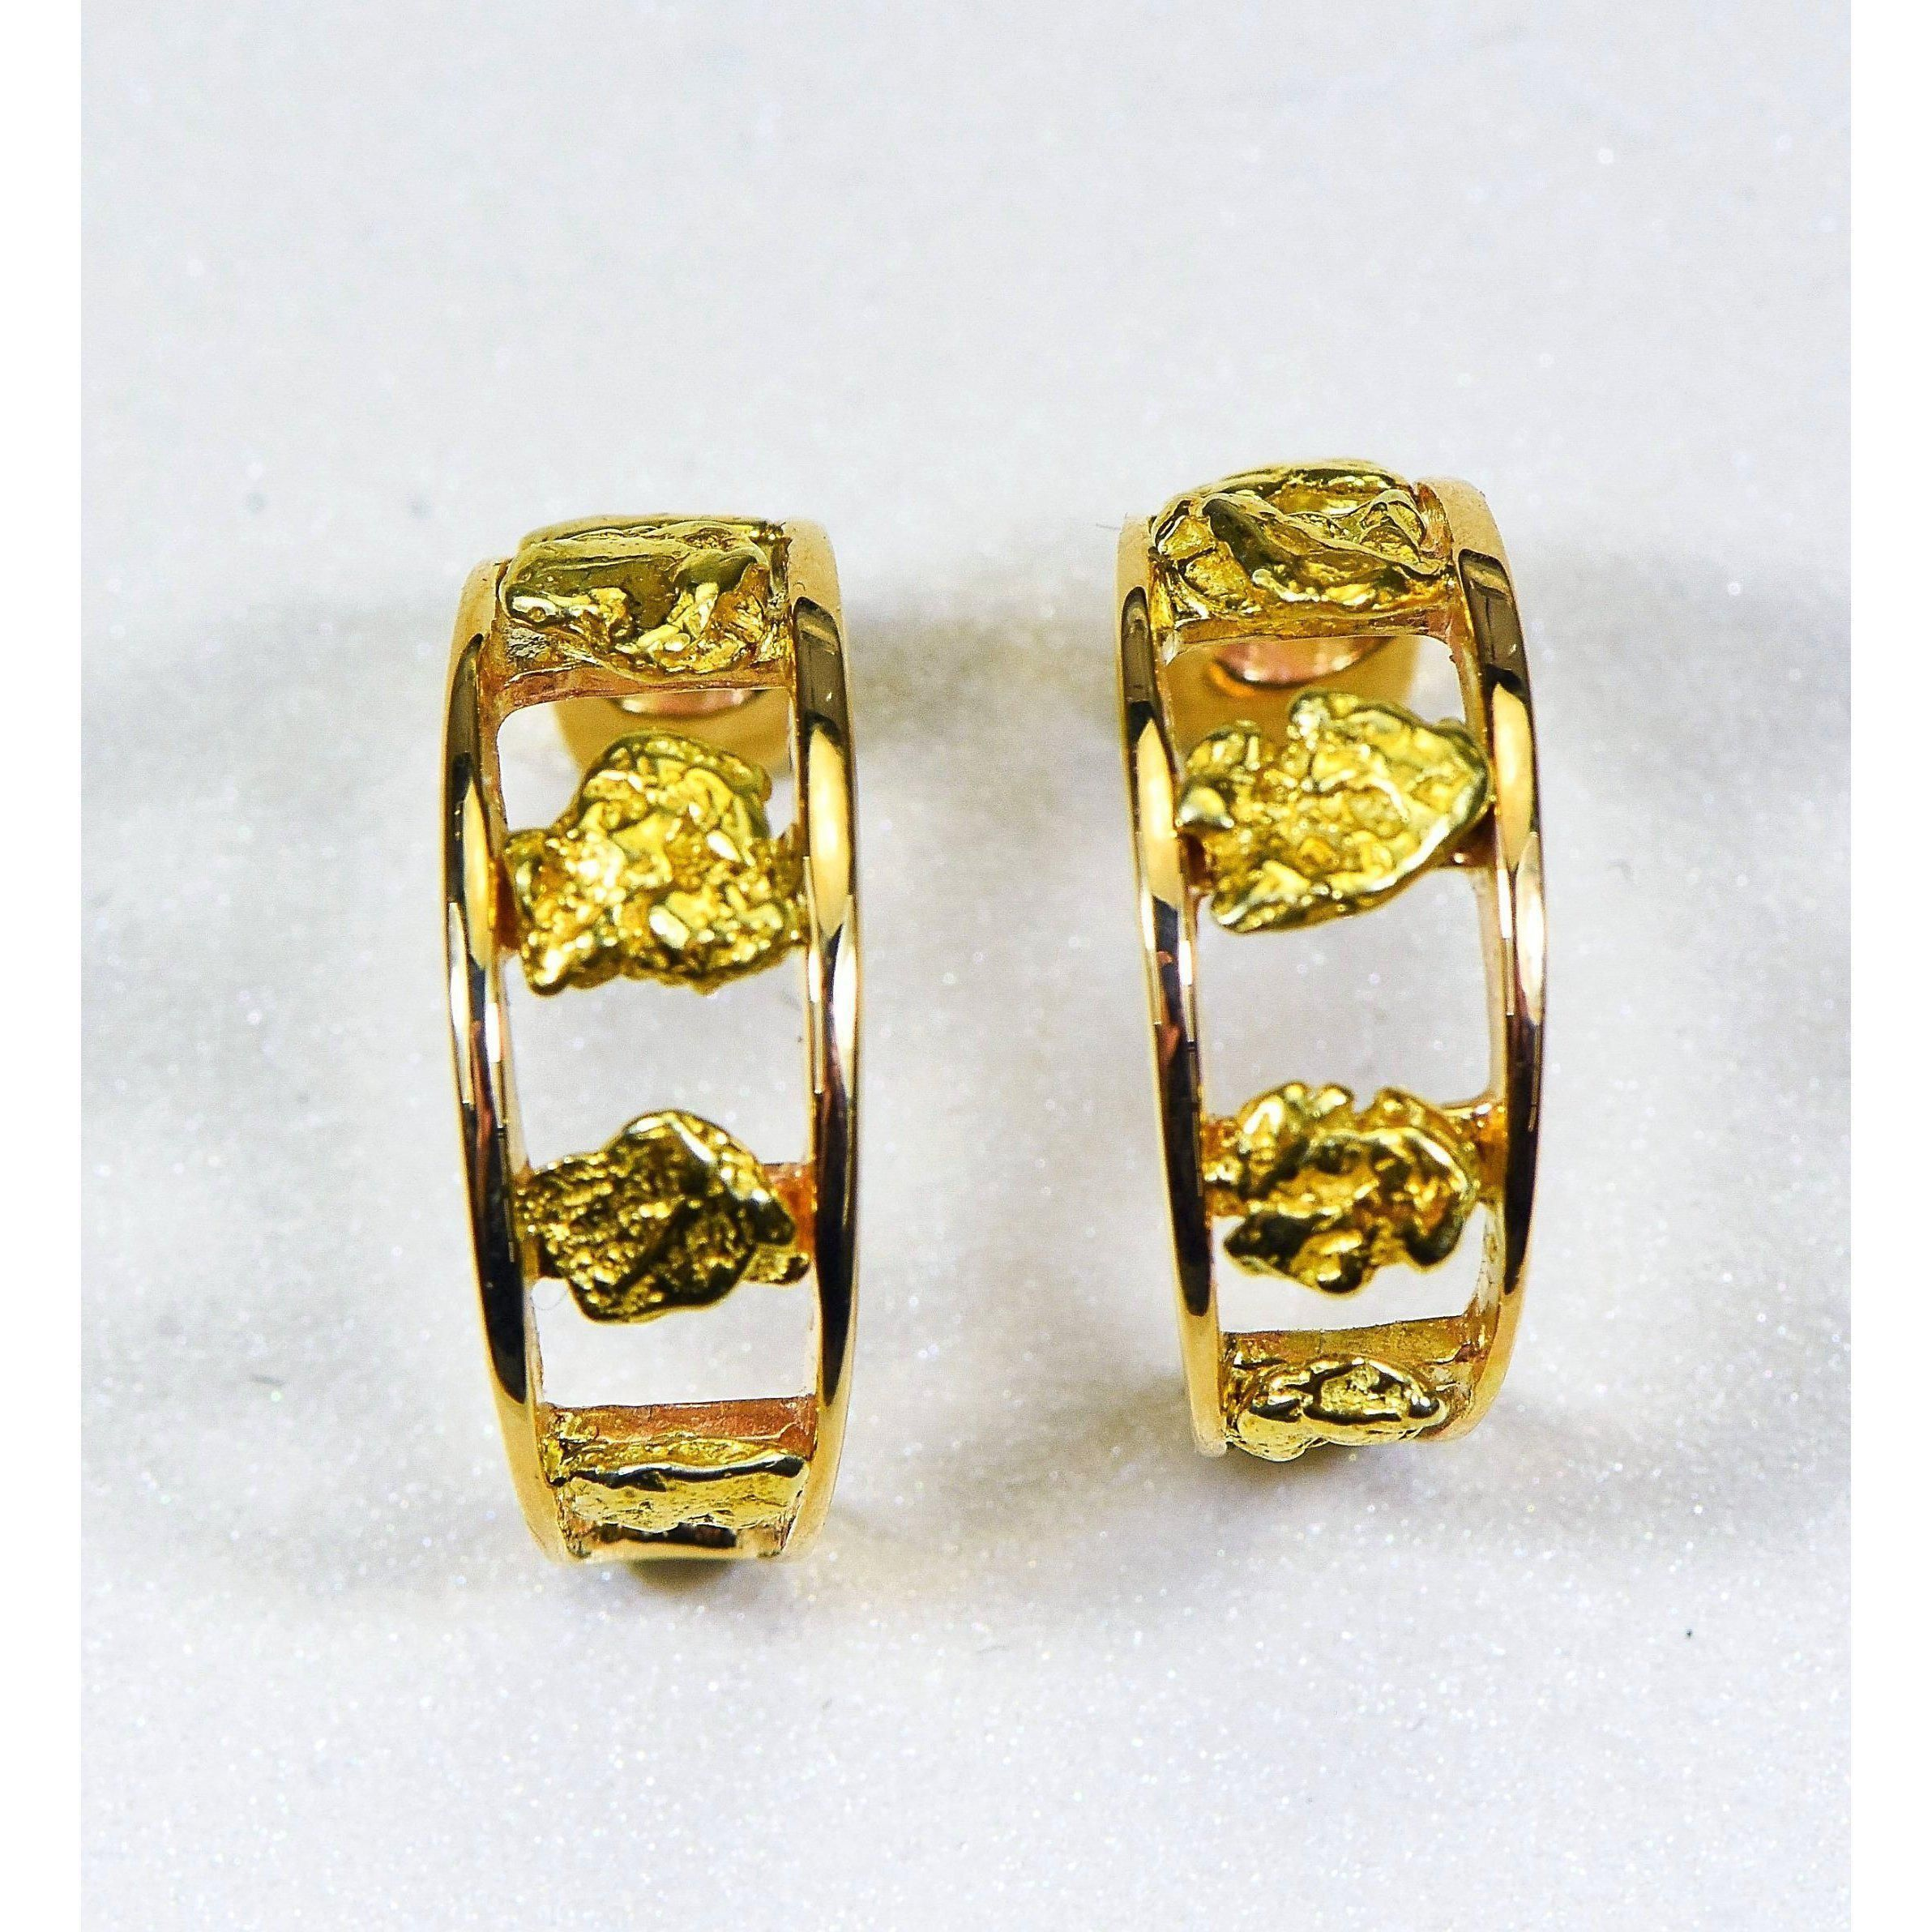 Gold Nugget Earrings Orocal Eh20 Genuine Hand Crafted Jewelry 14k Gold Casting In 2020 Gold Nugget Jewelry Gold Nugget Natural Gold Nugget